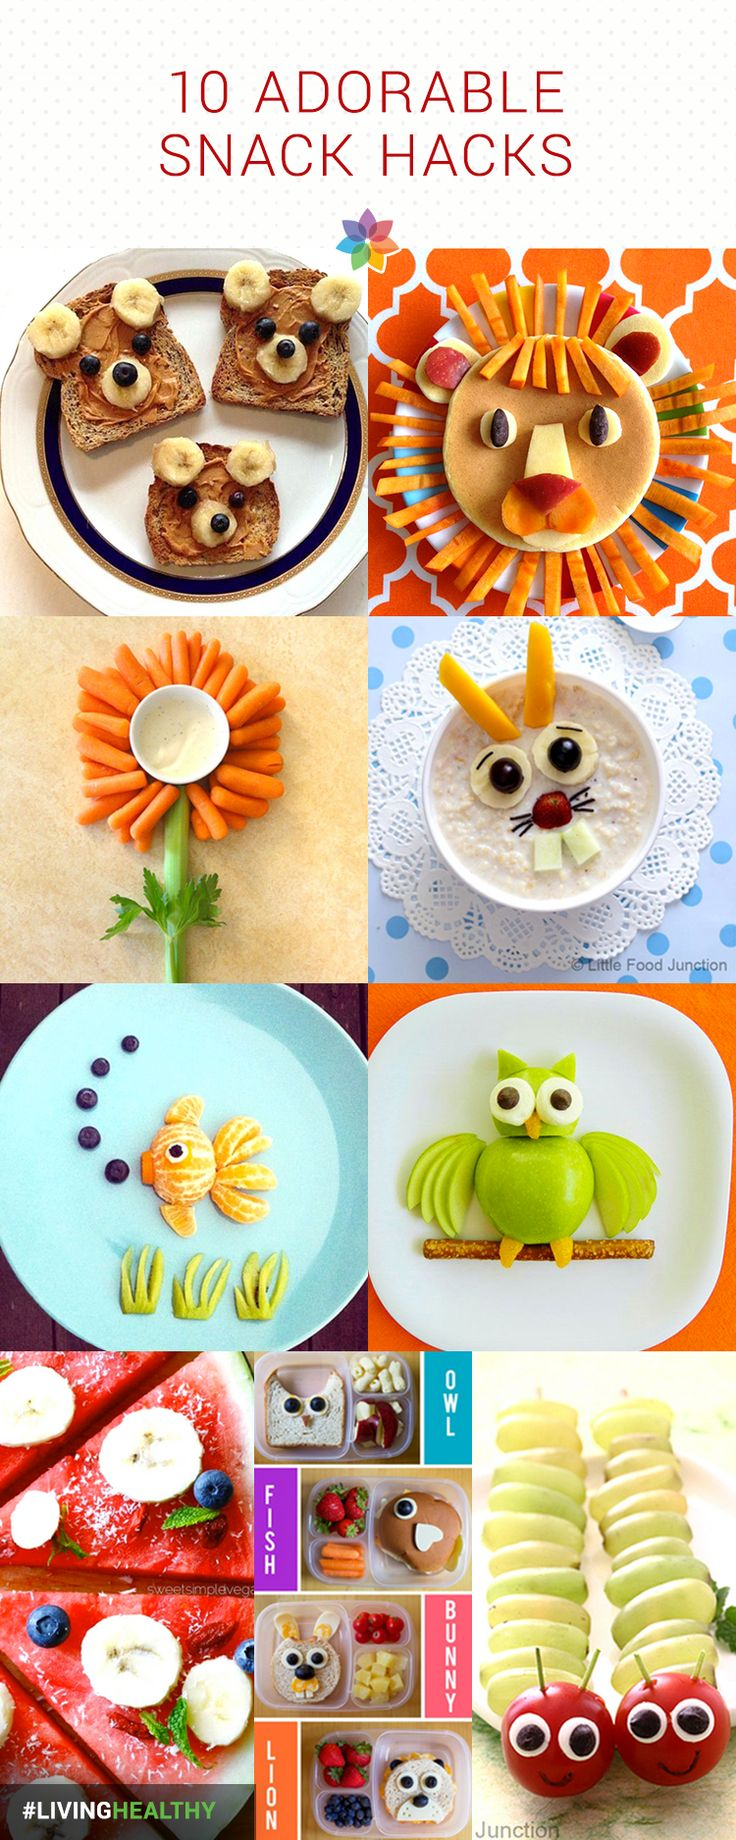 Try these 10 adorable snack hacks for healthy kids.